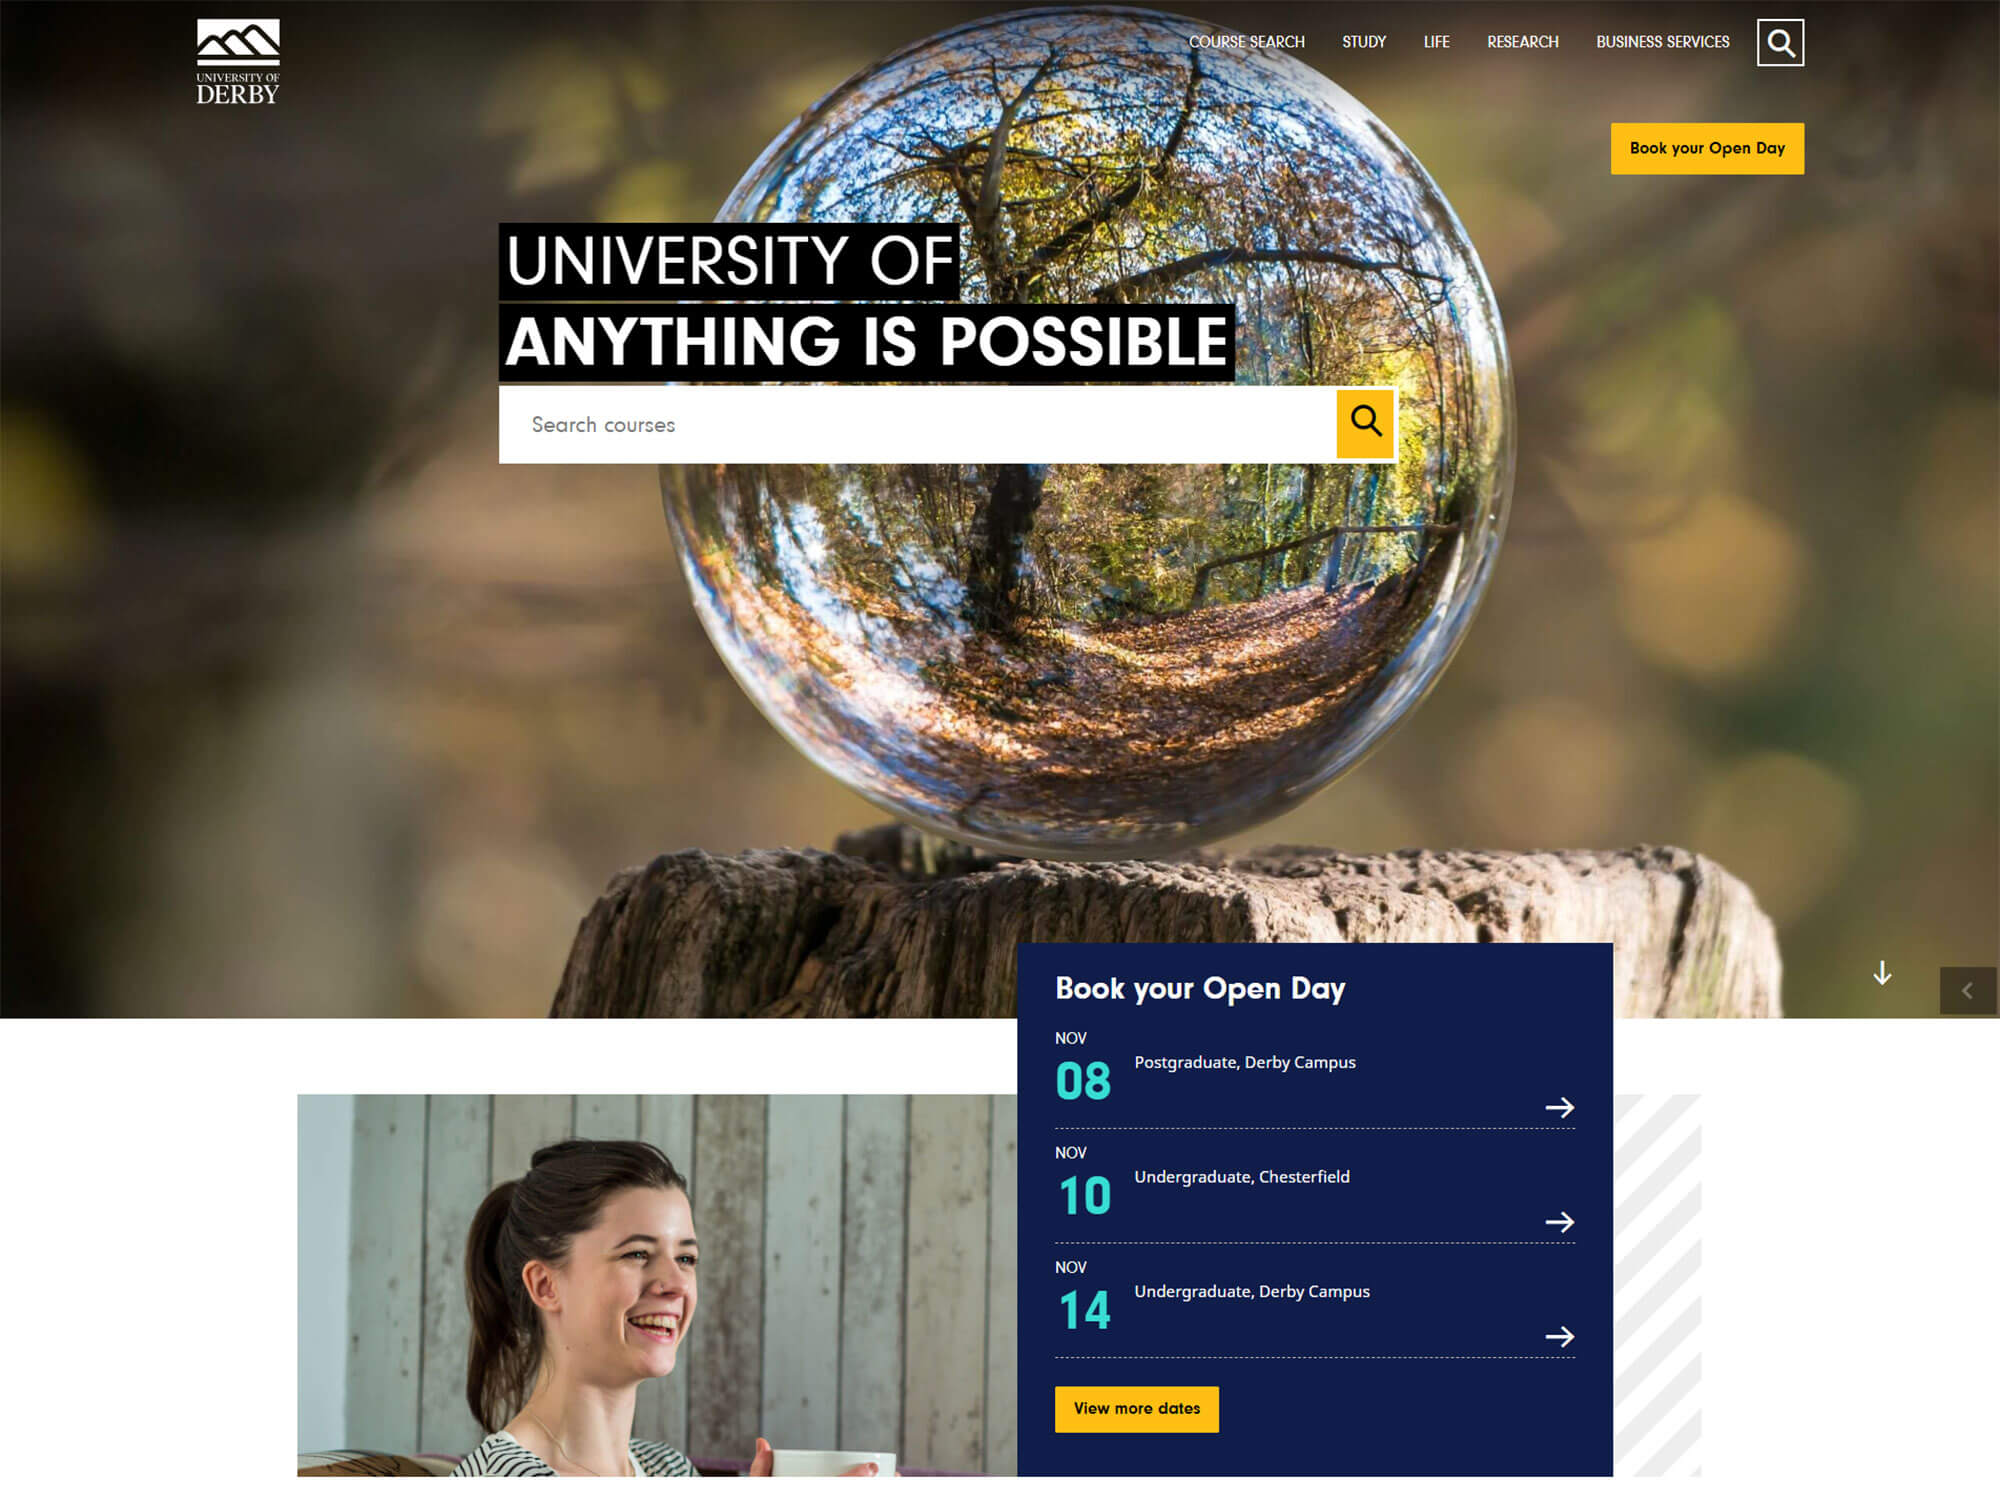 Top half of University of Derby's website homepage